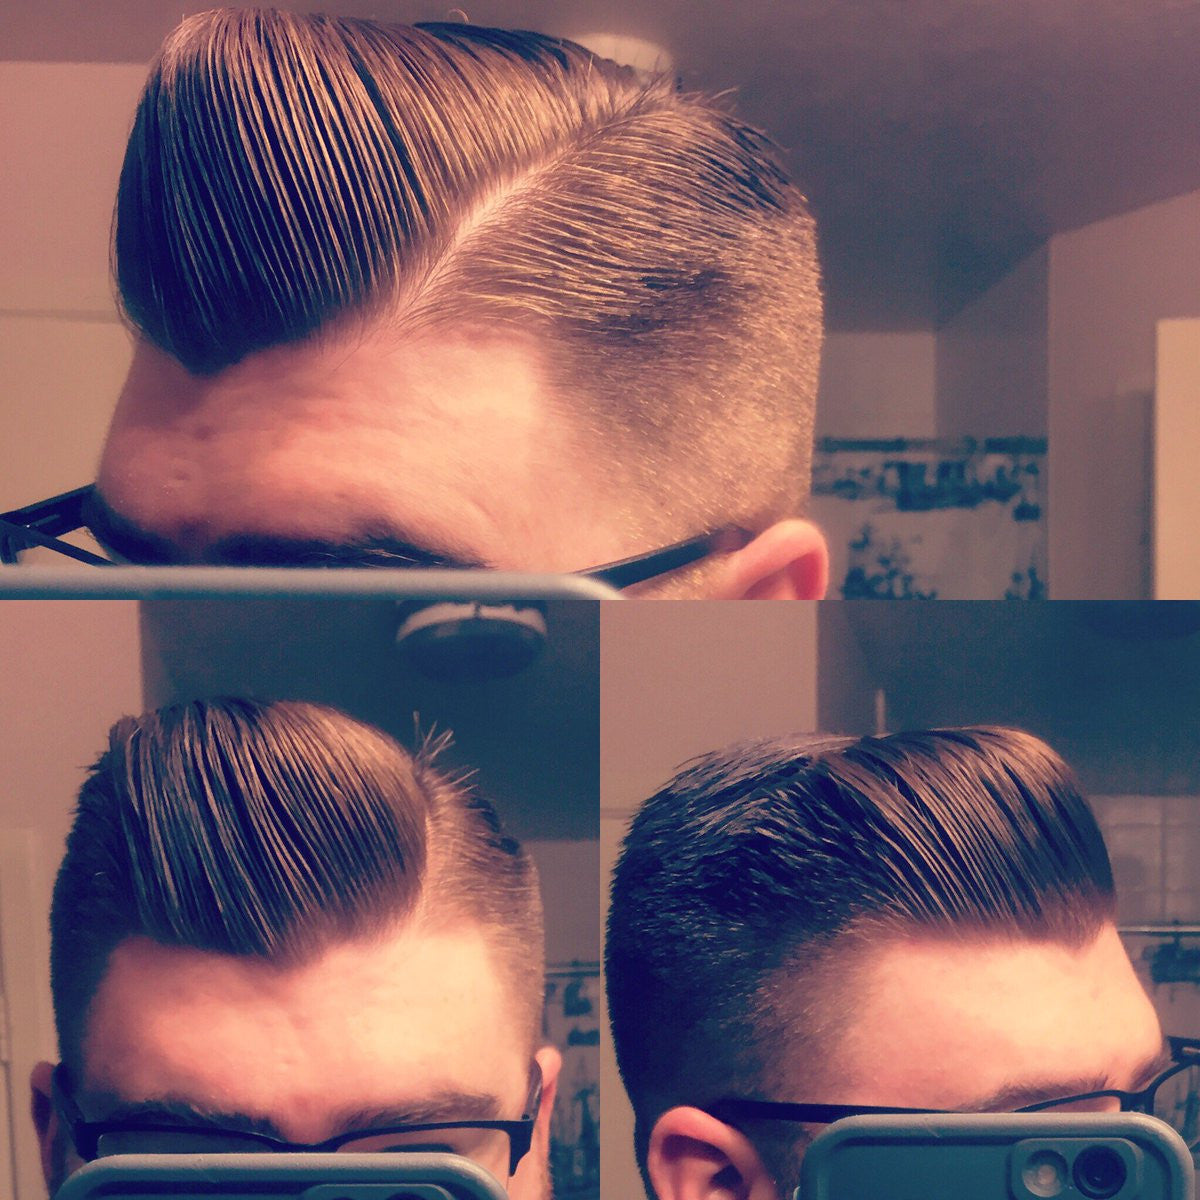 Gentleman with side parted hair